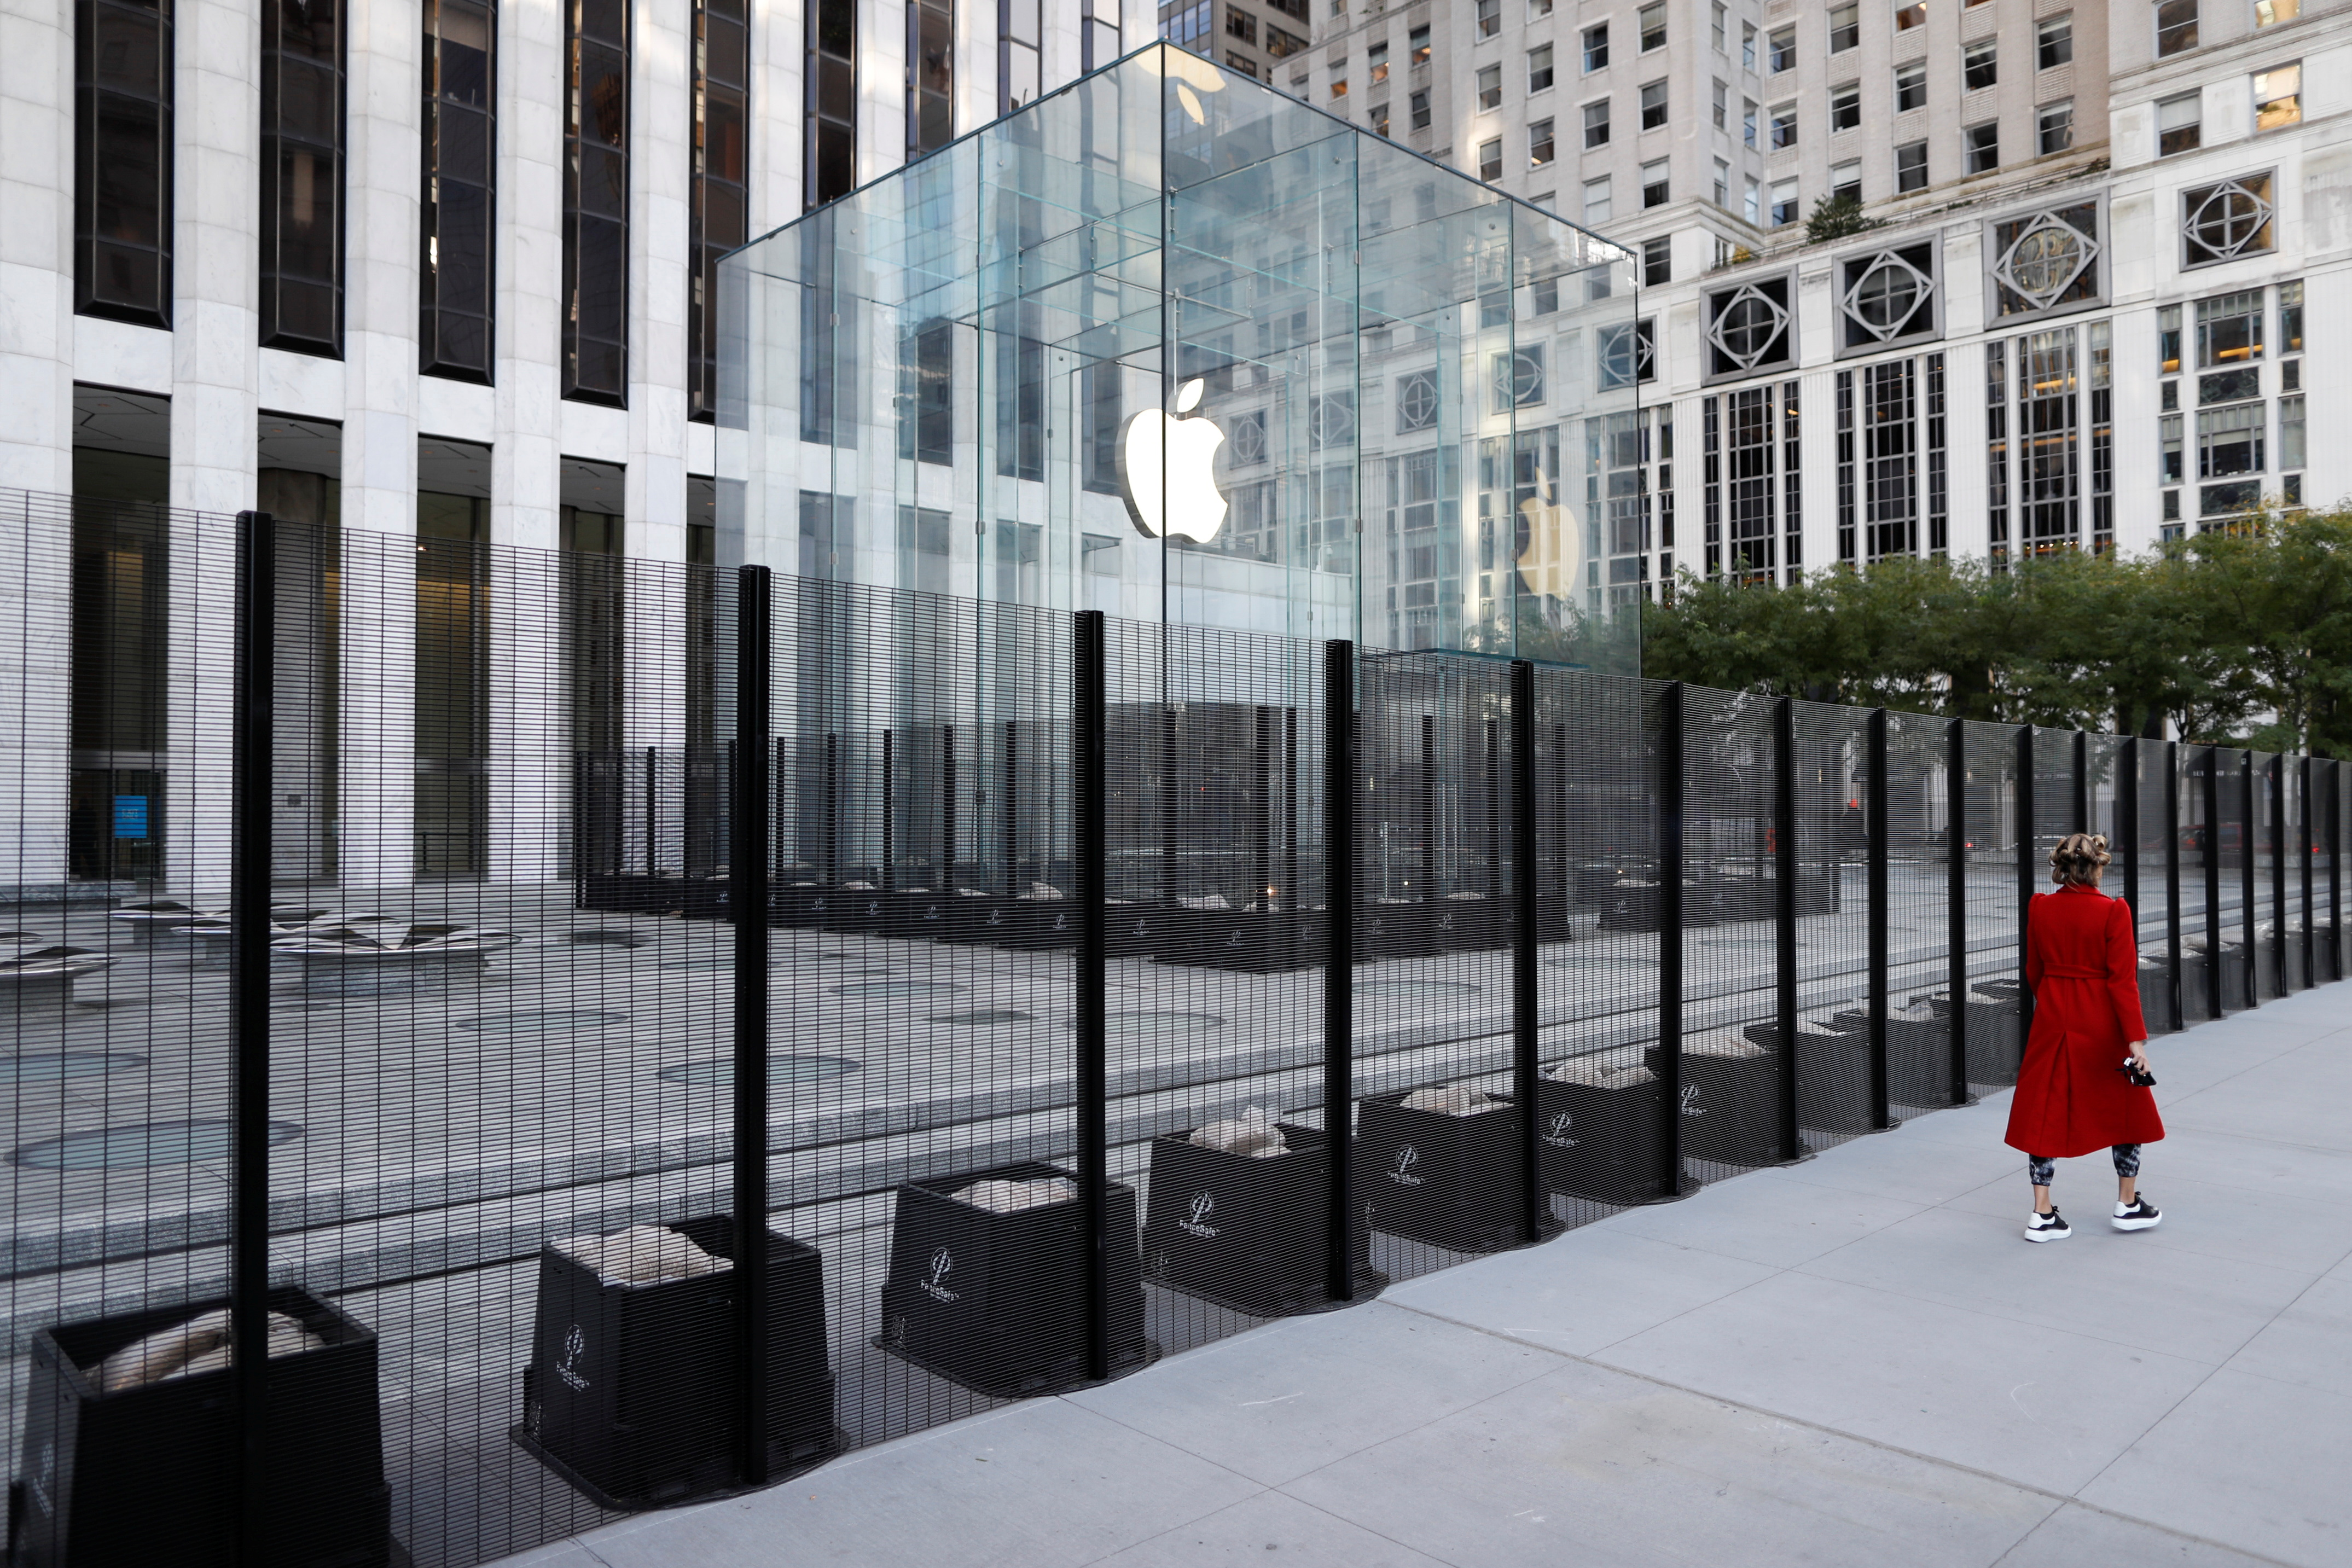 A person walks past a security fence erected around the Apple Fifth Avenue store as votes continue to be counted following the 2020 U.S. presidential election, in Manhattan, New York City, U.S., November 5, 2020. REUTERS/Andrew Kelly